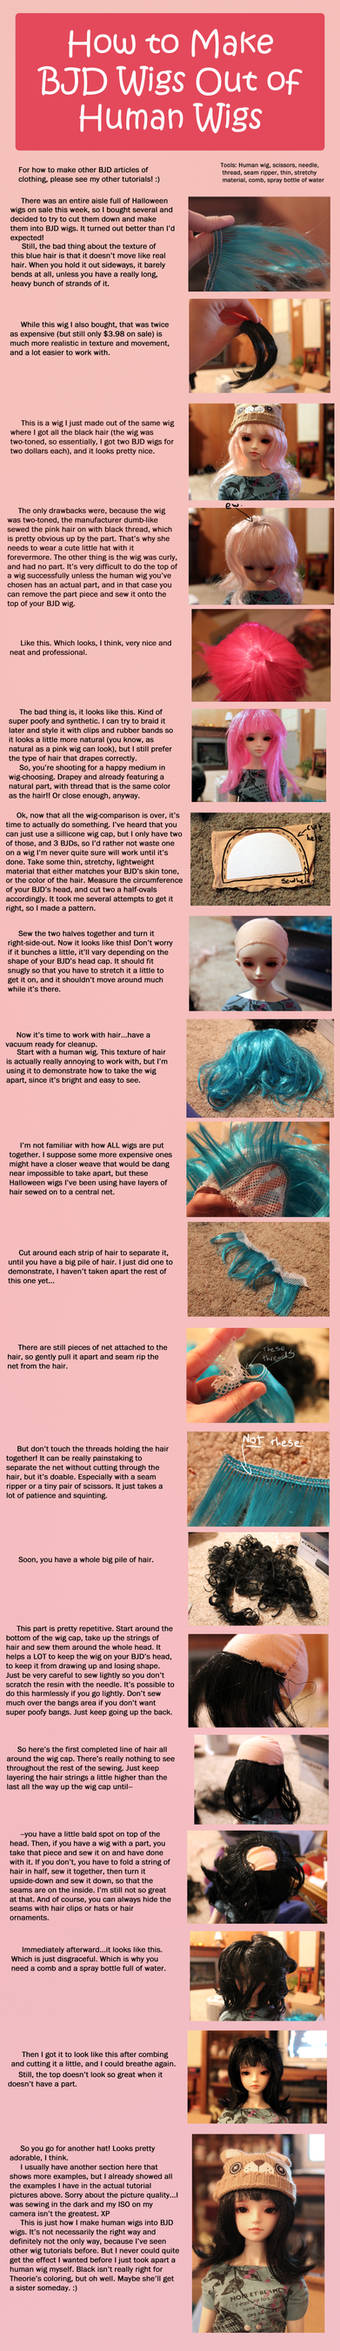 How to Make BJD Wigs out of Human Wigs